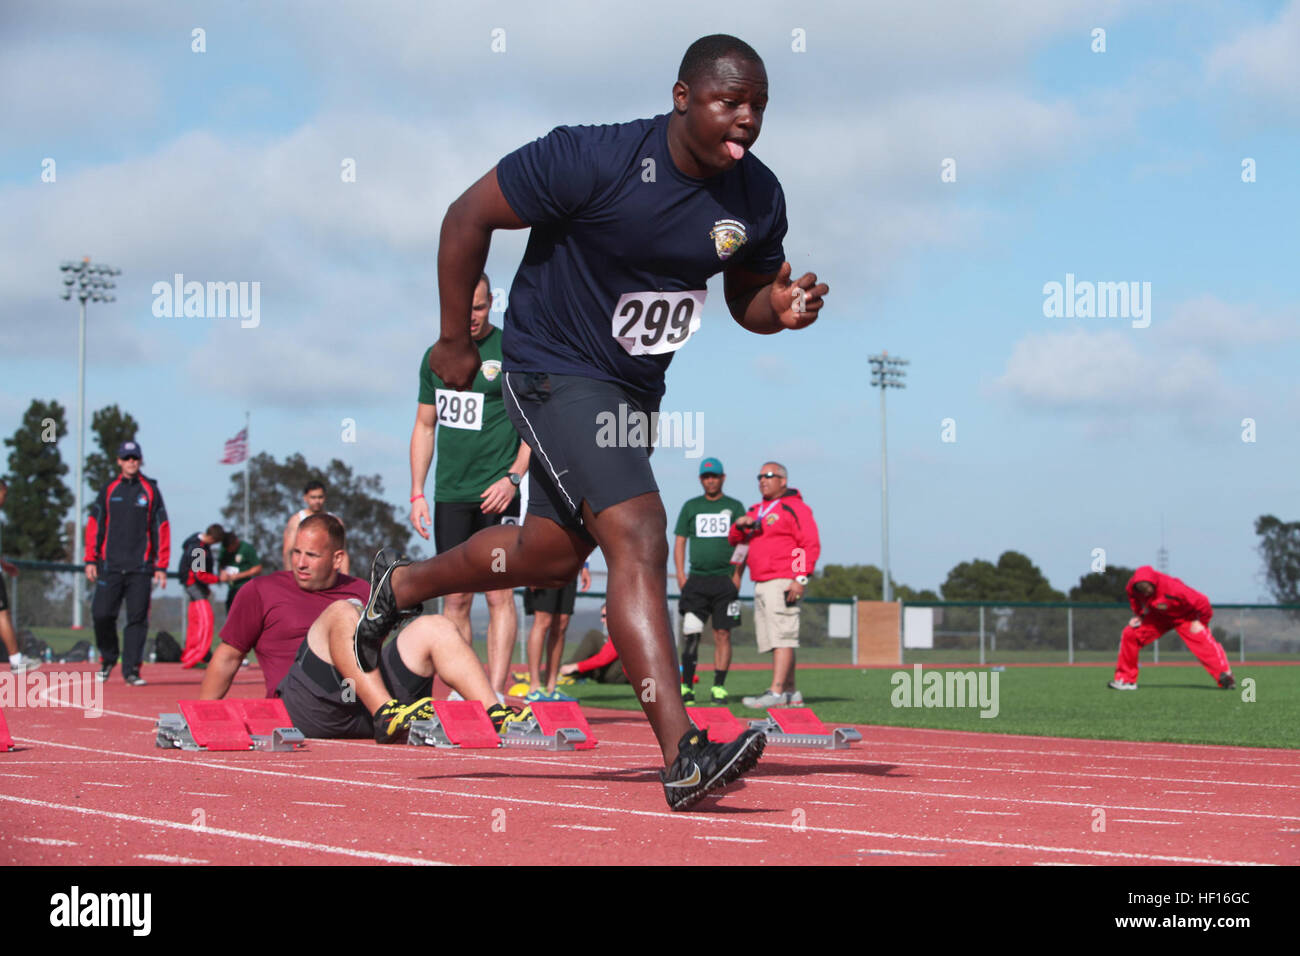 Lance Cpl. Zachary Hopkins, with Wounded Warrior Battalion West, practices starting from the blocks moments before - Stock Image